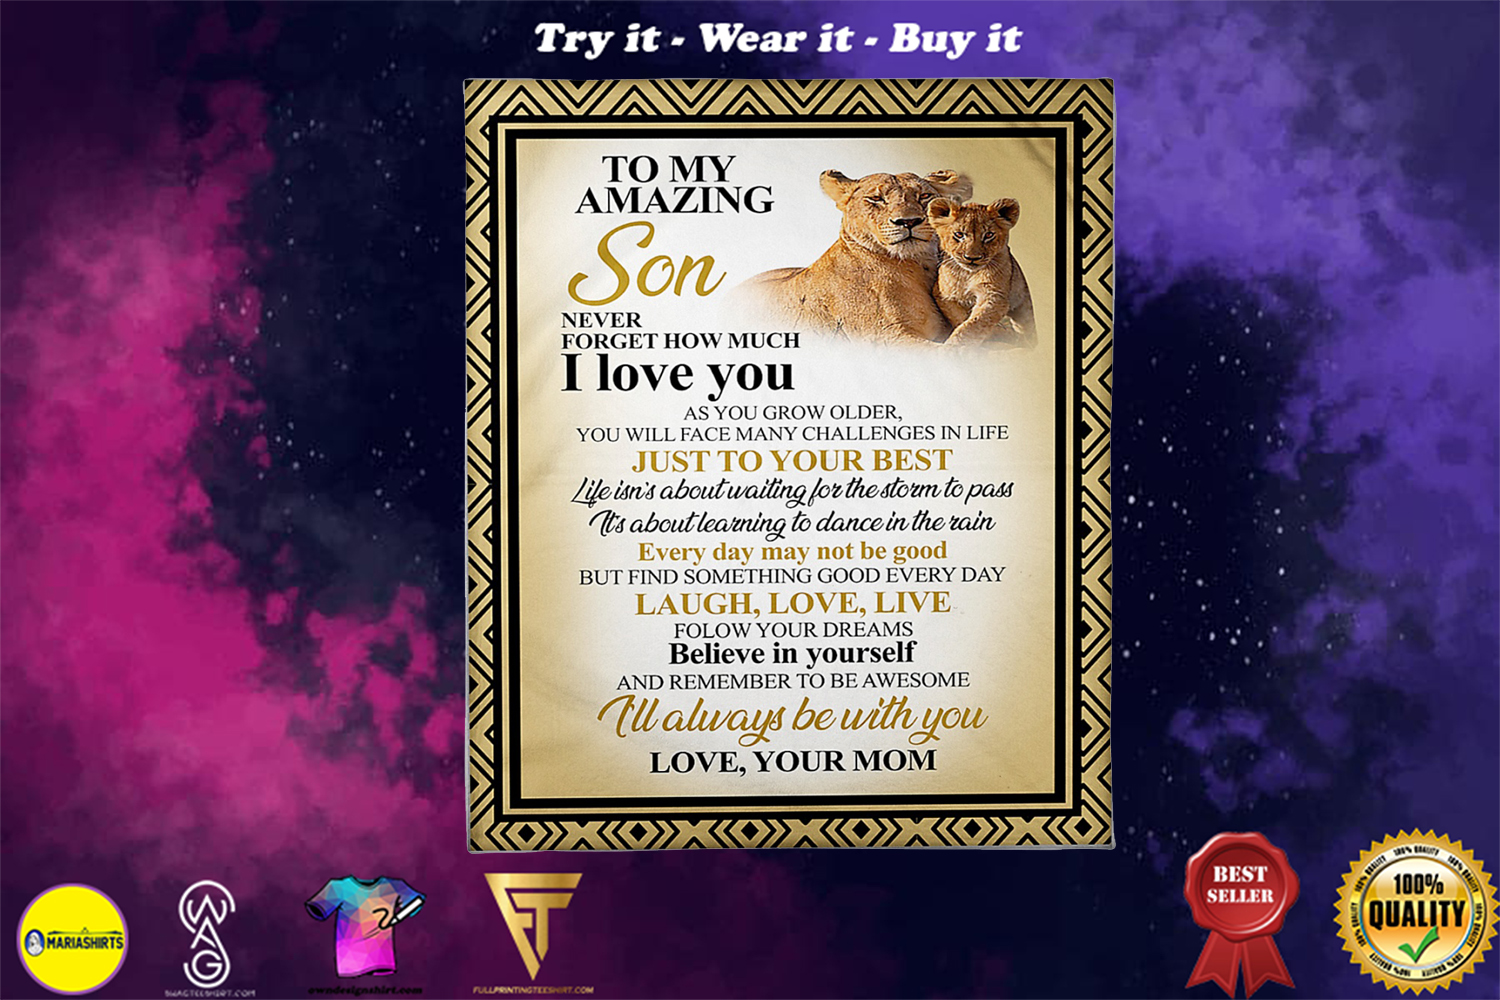 lion to my amazing son never forget how much i love you blanket - Copy